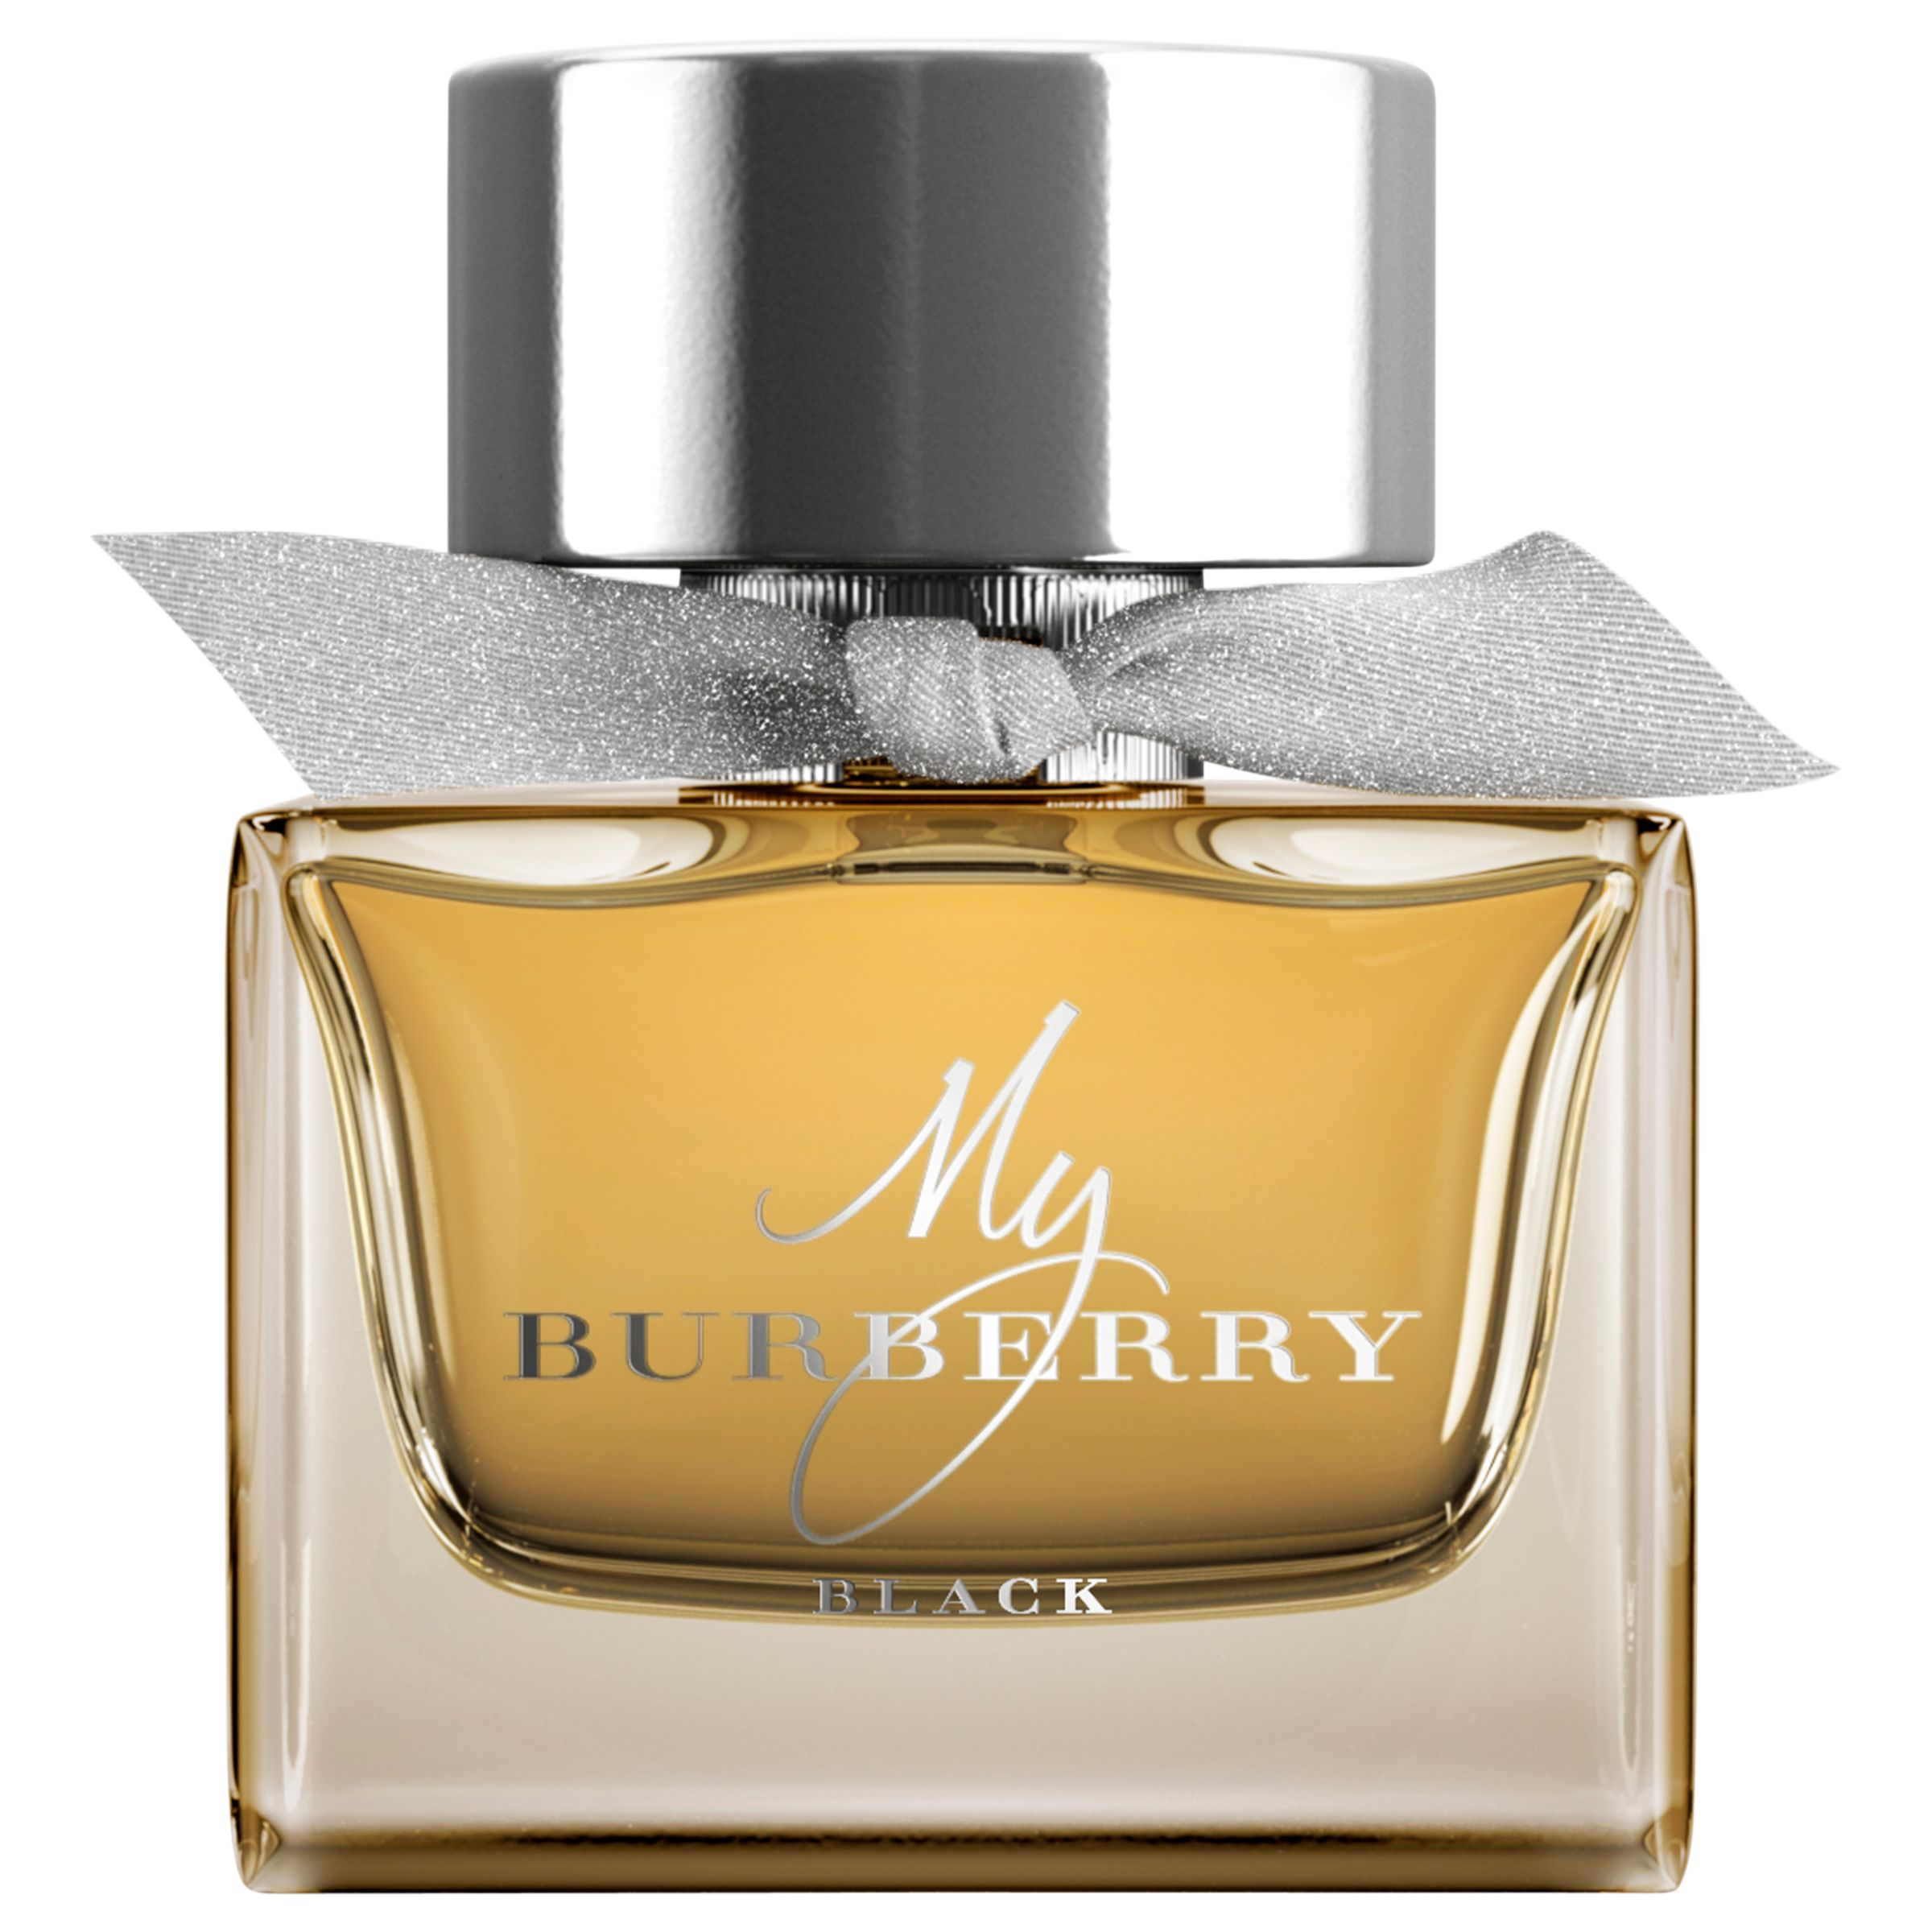 Burberry - My Burberry Black Parfum Limited Edition. W-90